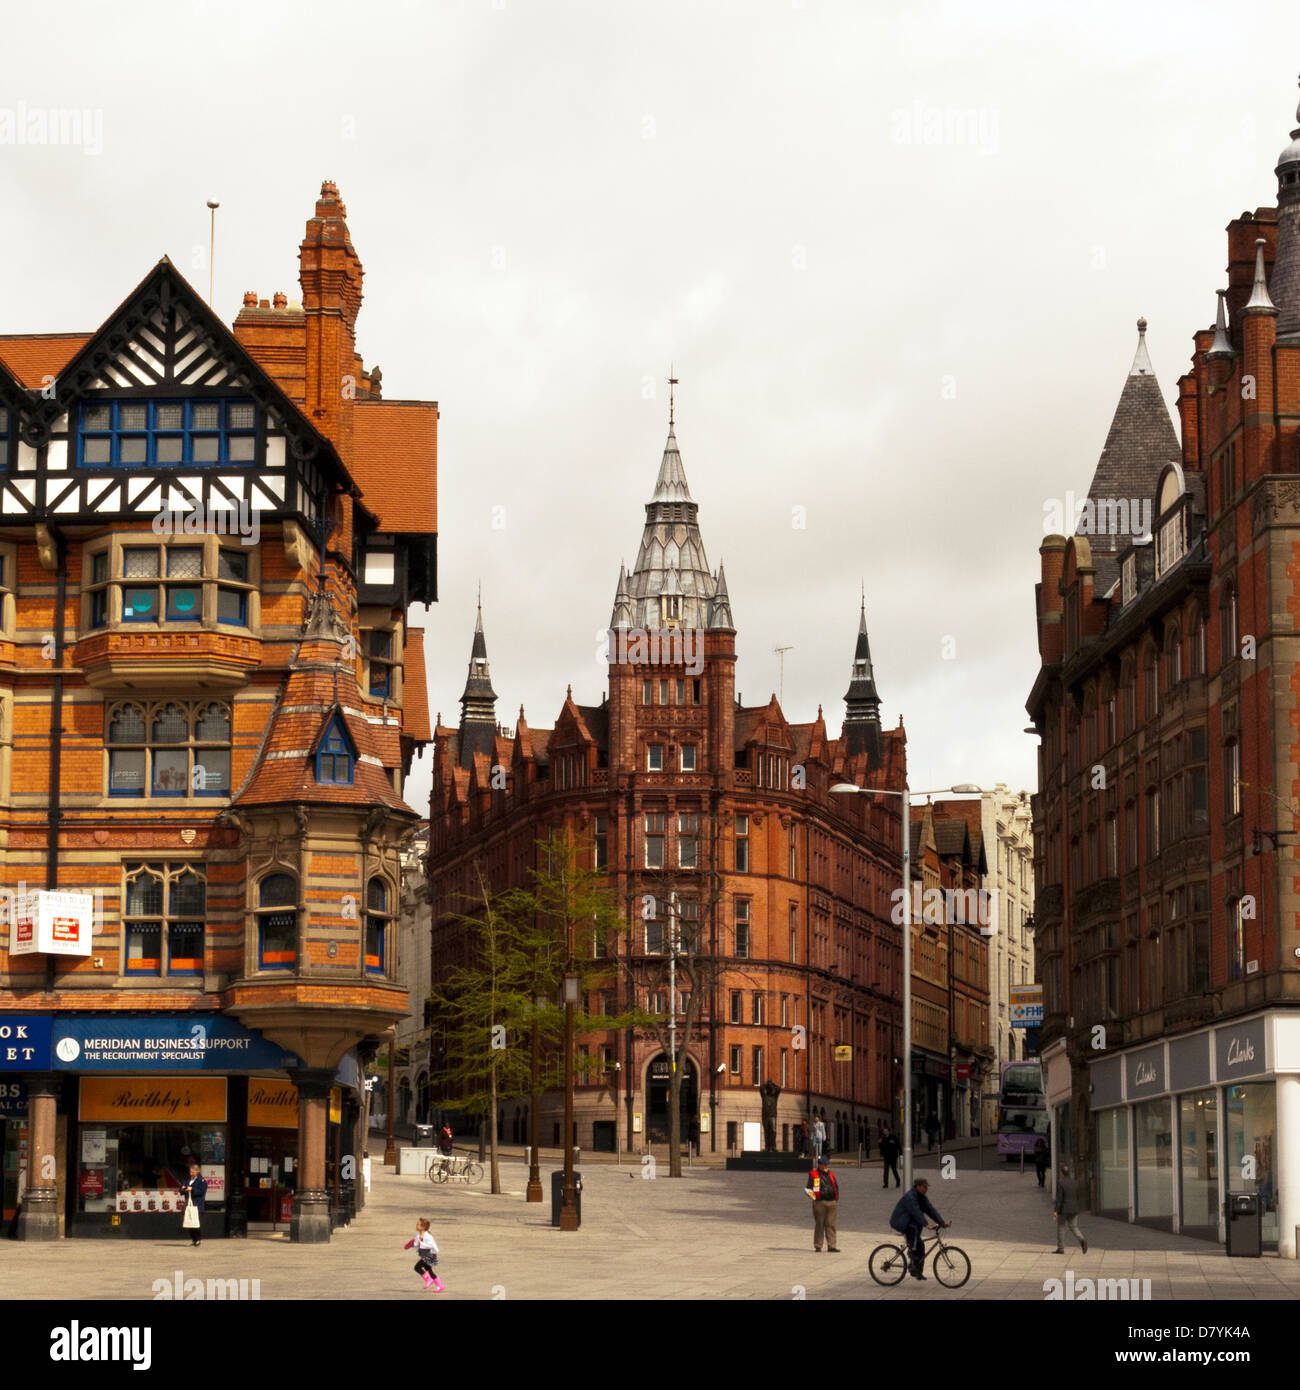 Nottingham City Centre, Nottinghamshire, UK, England - Stock Image